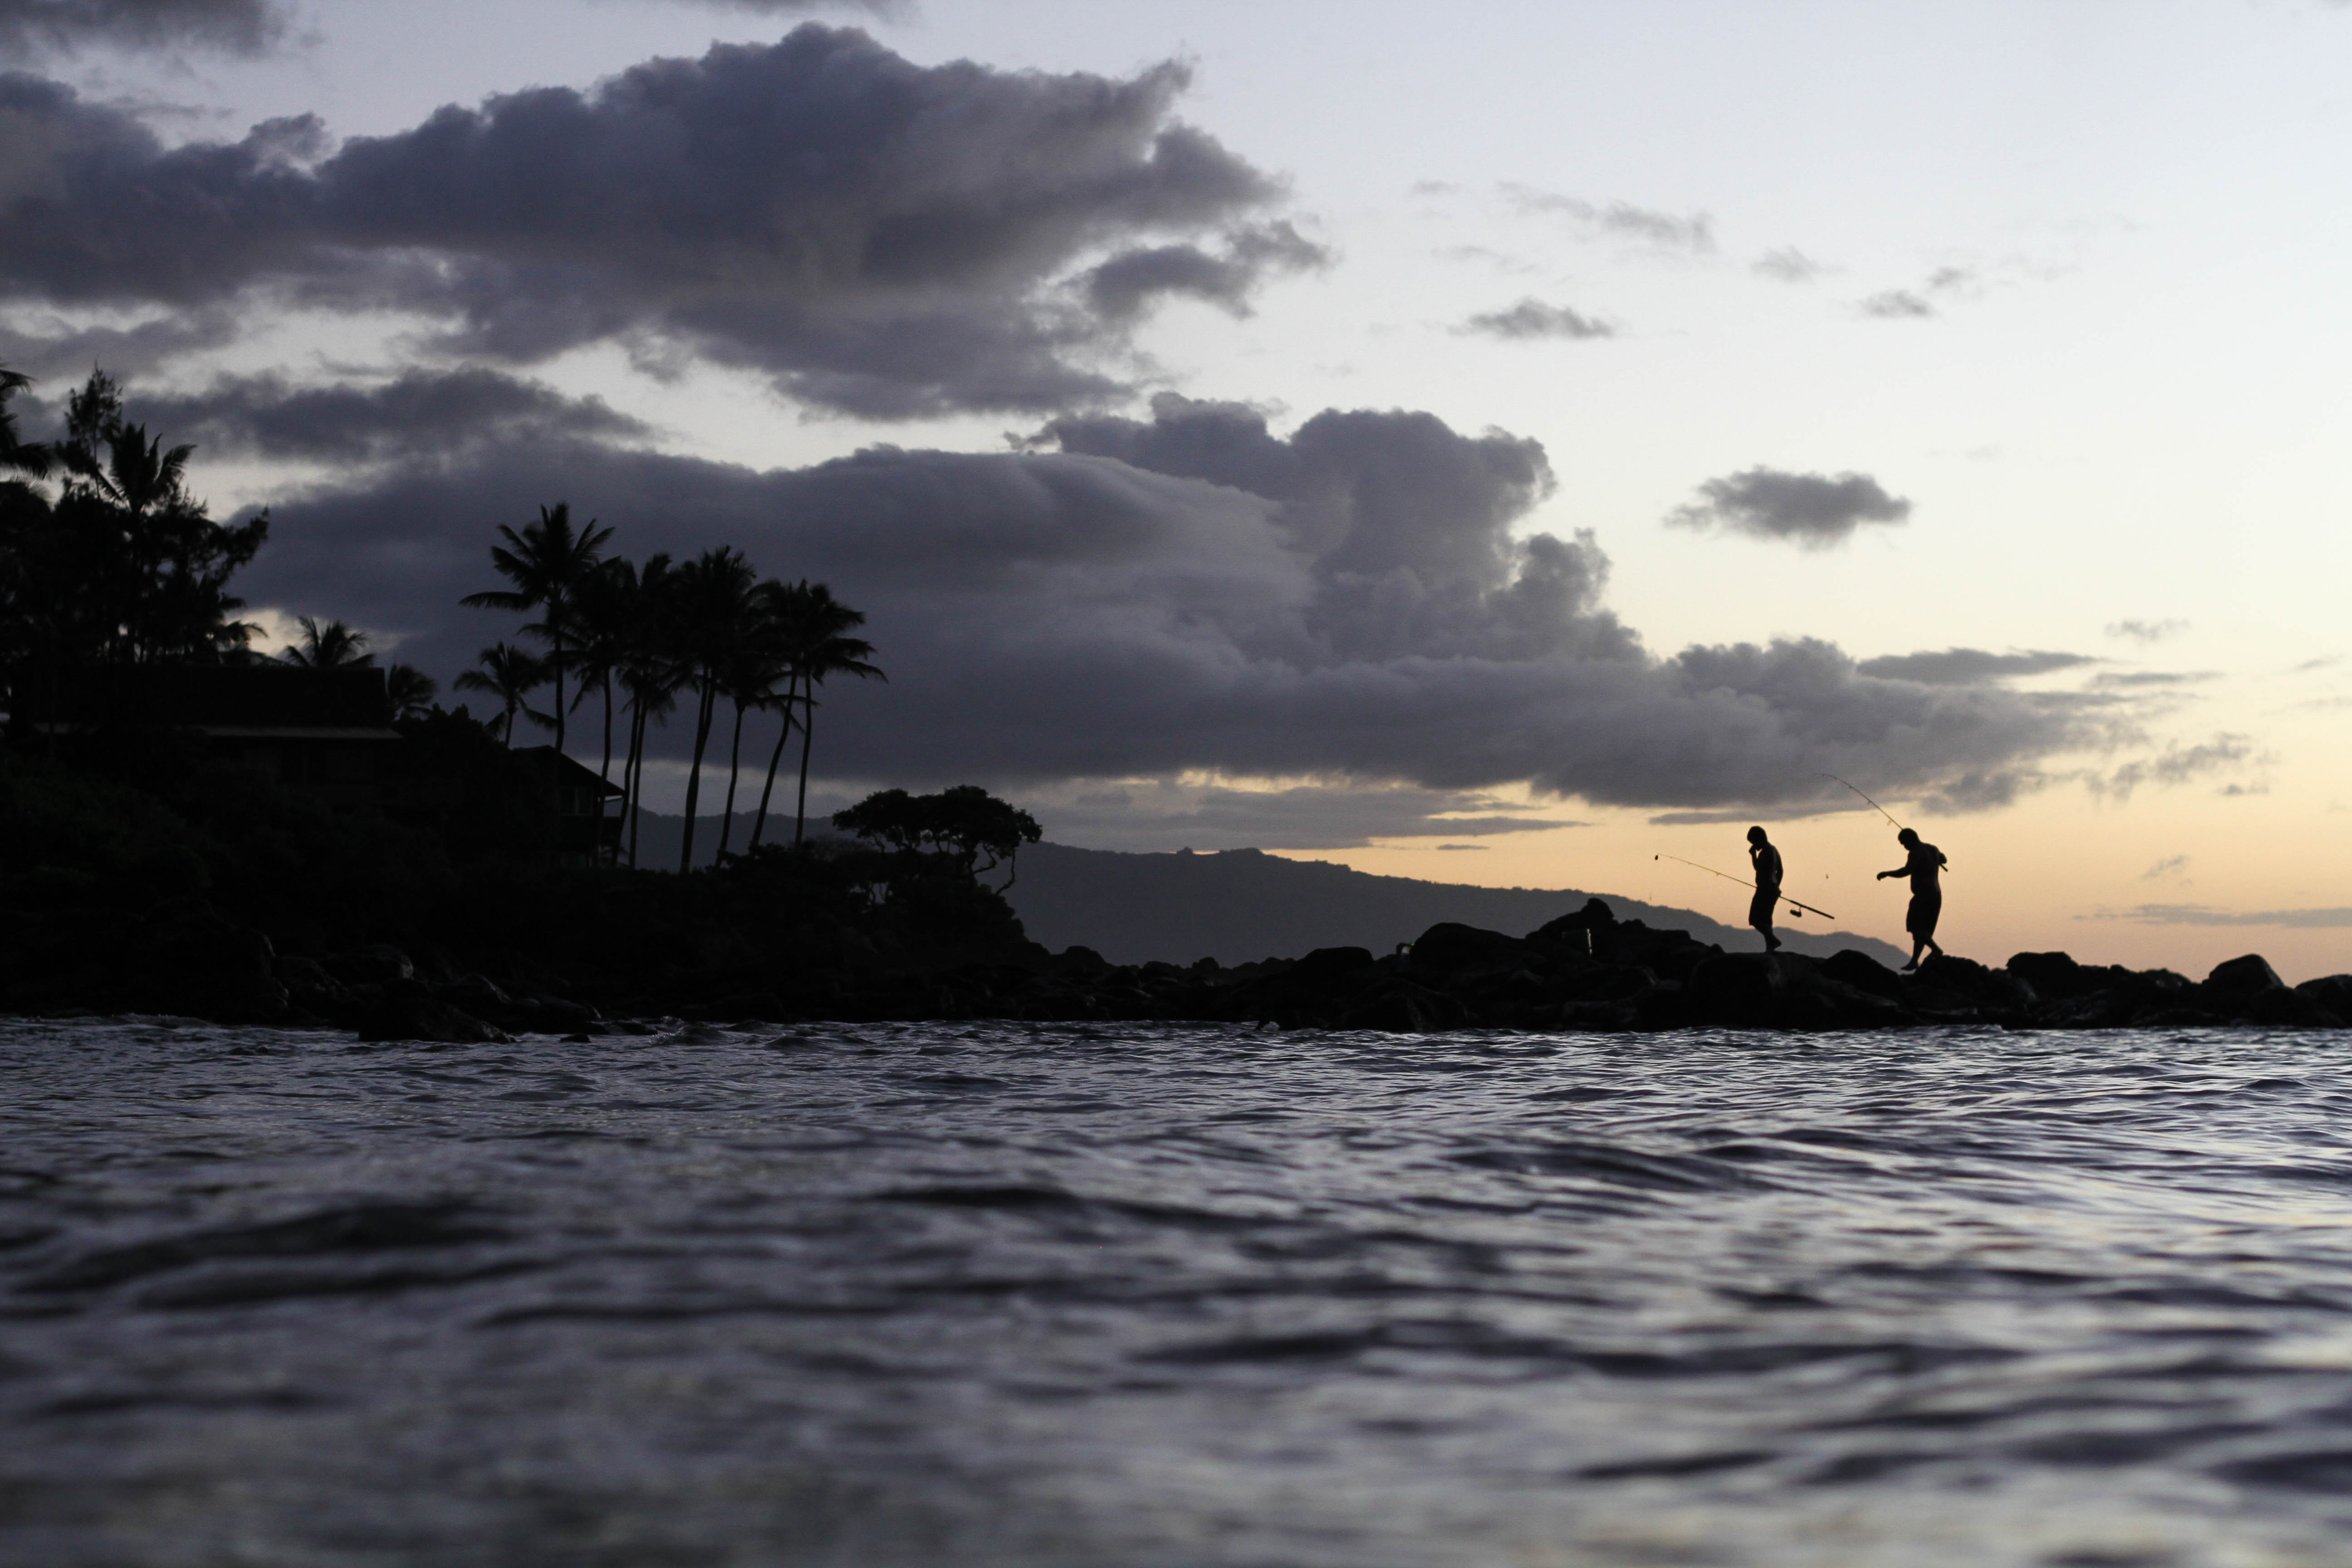 People out in the ocean in Hawaii.